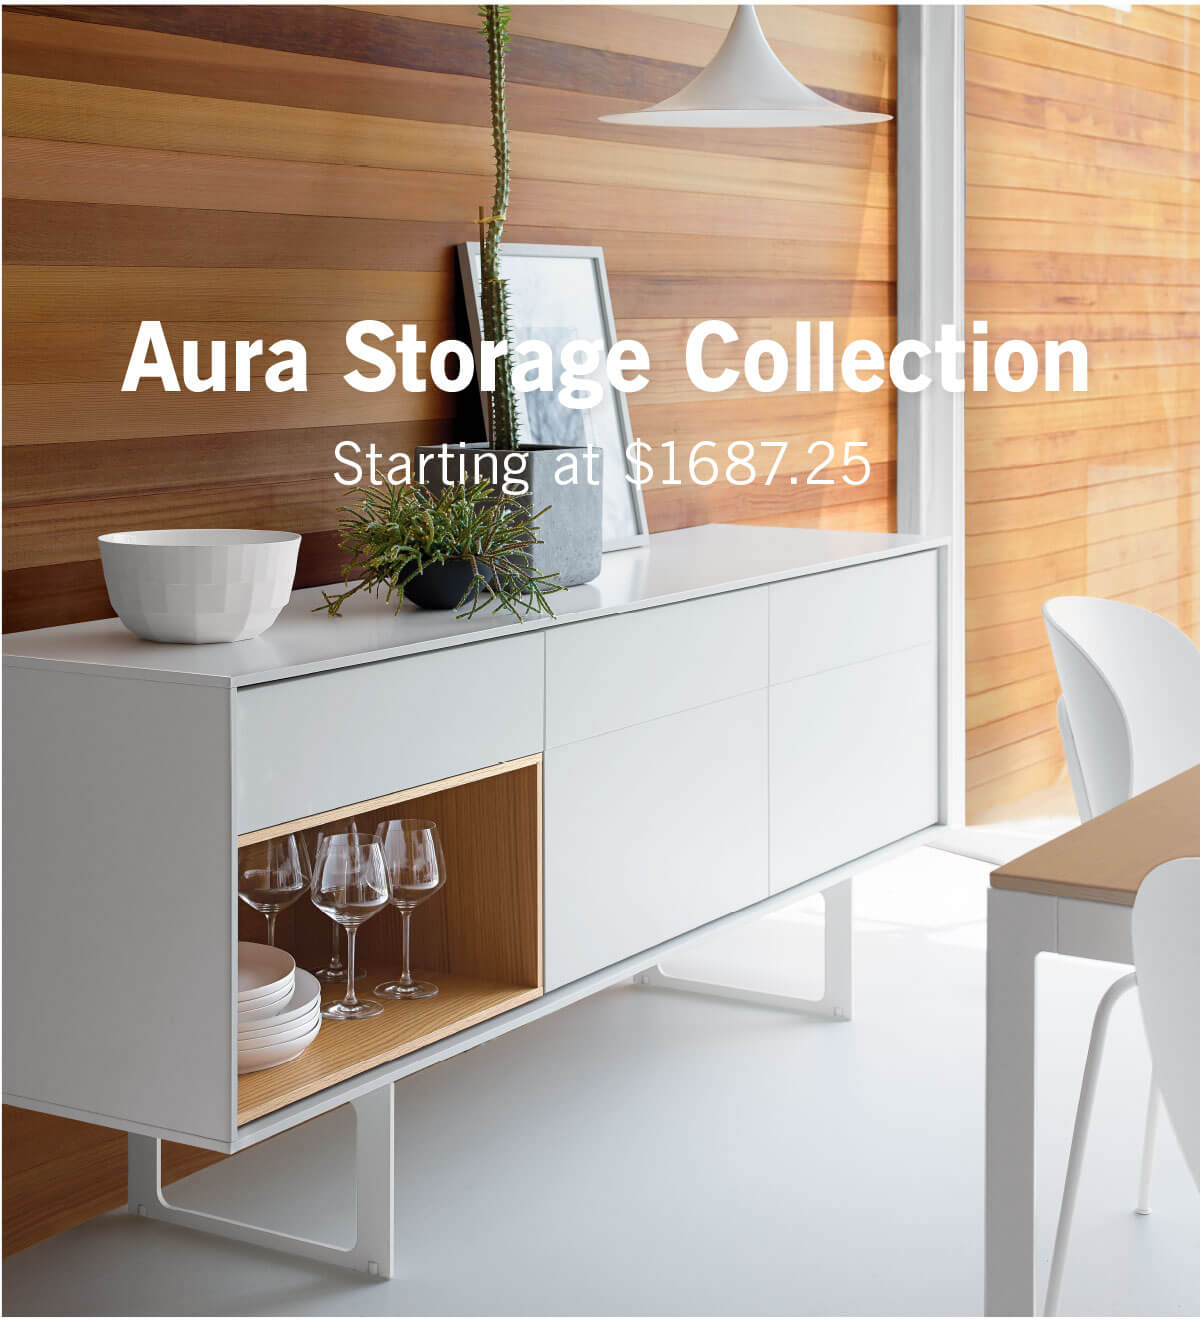 Aura Storage Collection